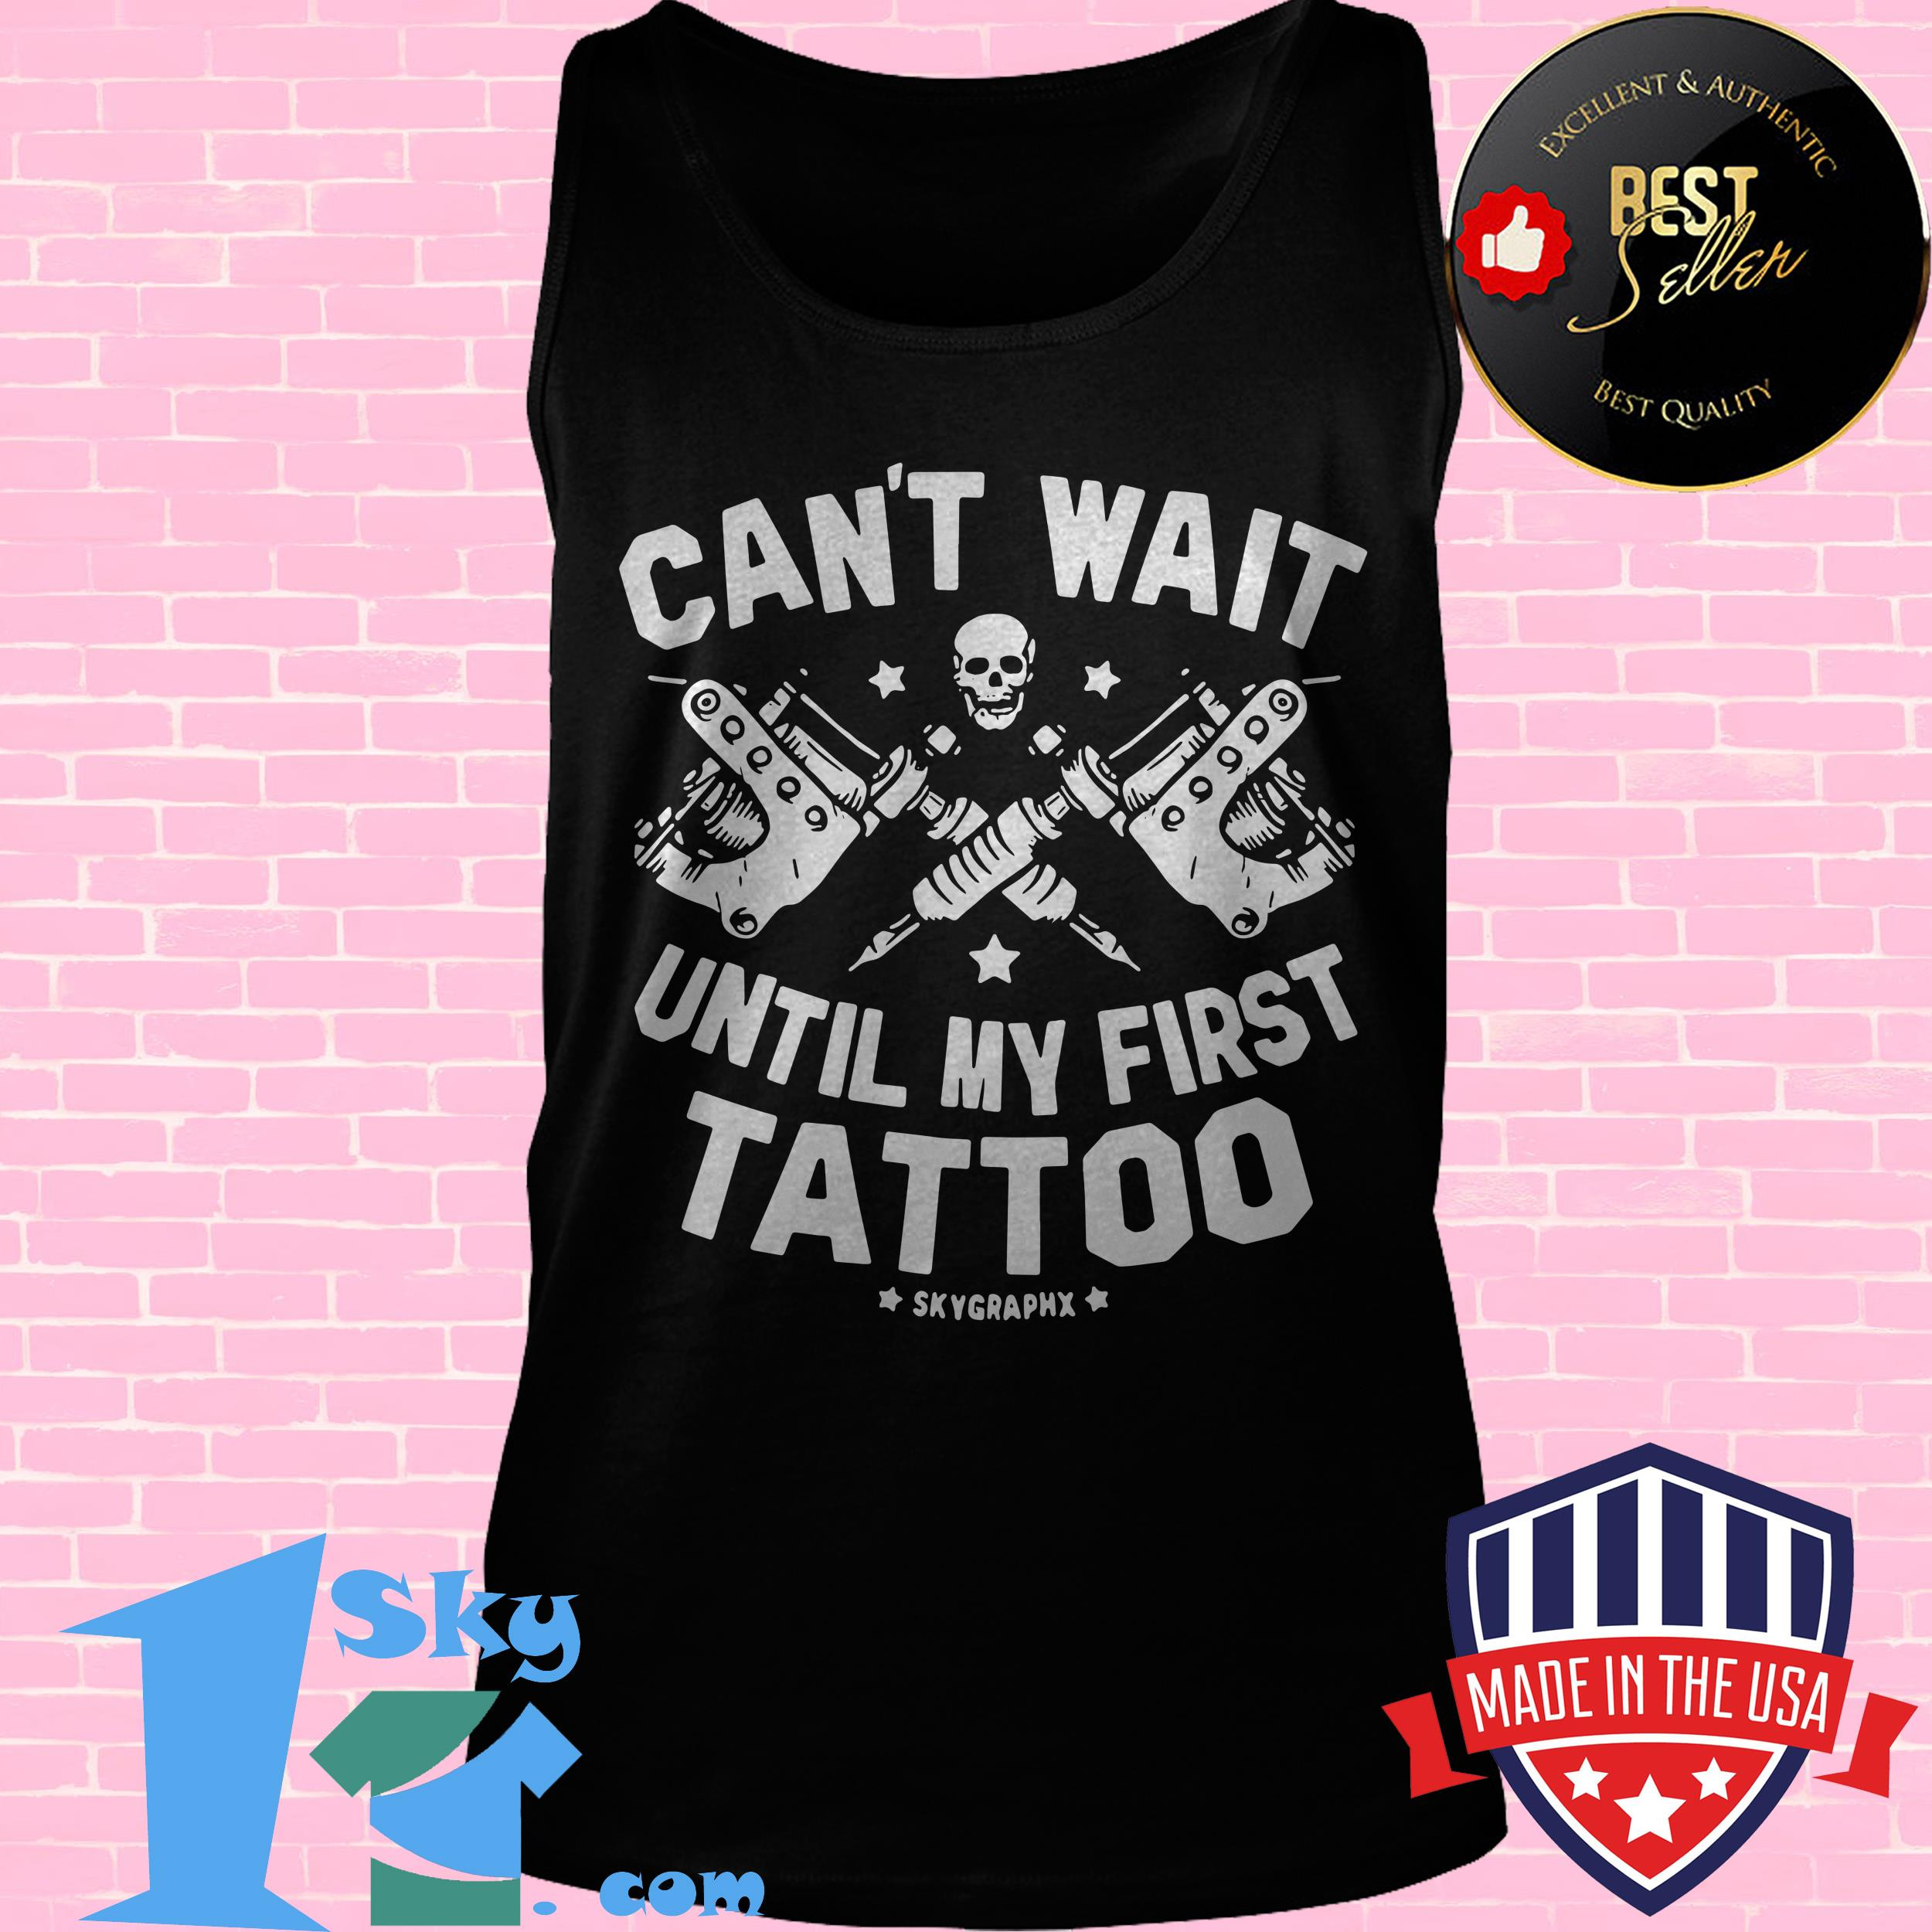 cant wait until first tattoo skull tank top - Can't Wait Until First Tattoo Skull shirt